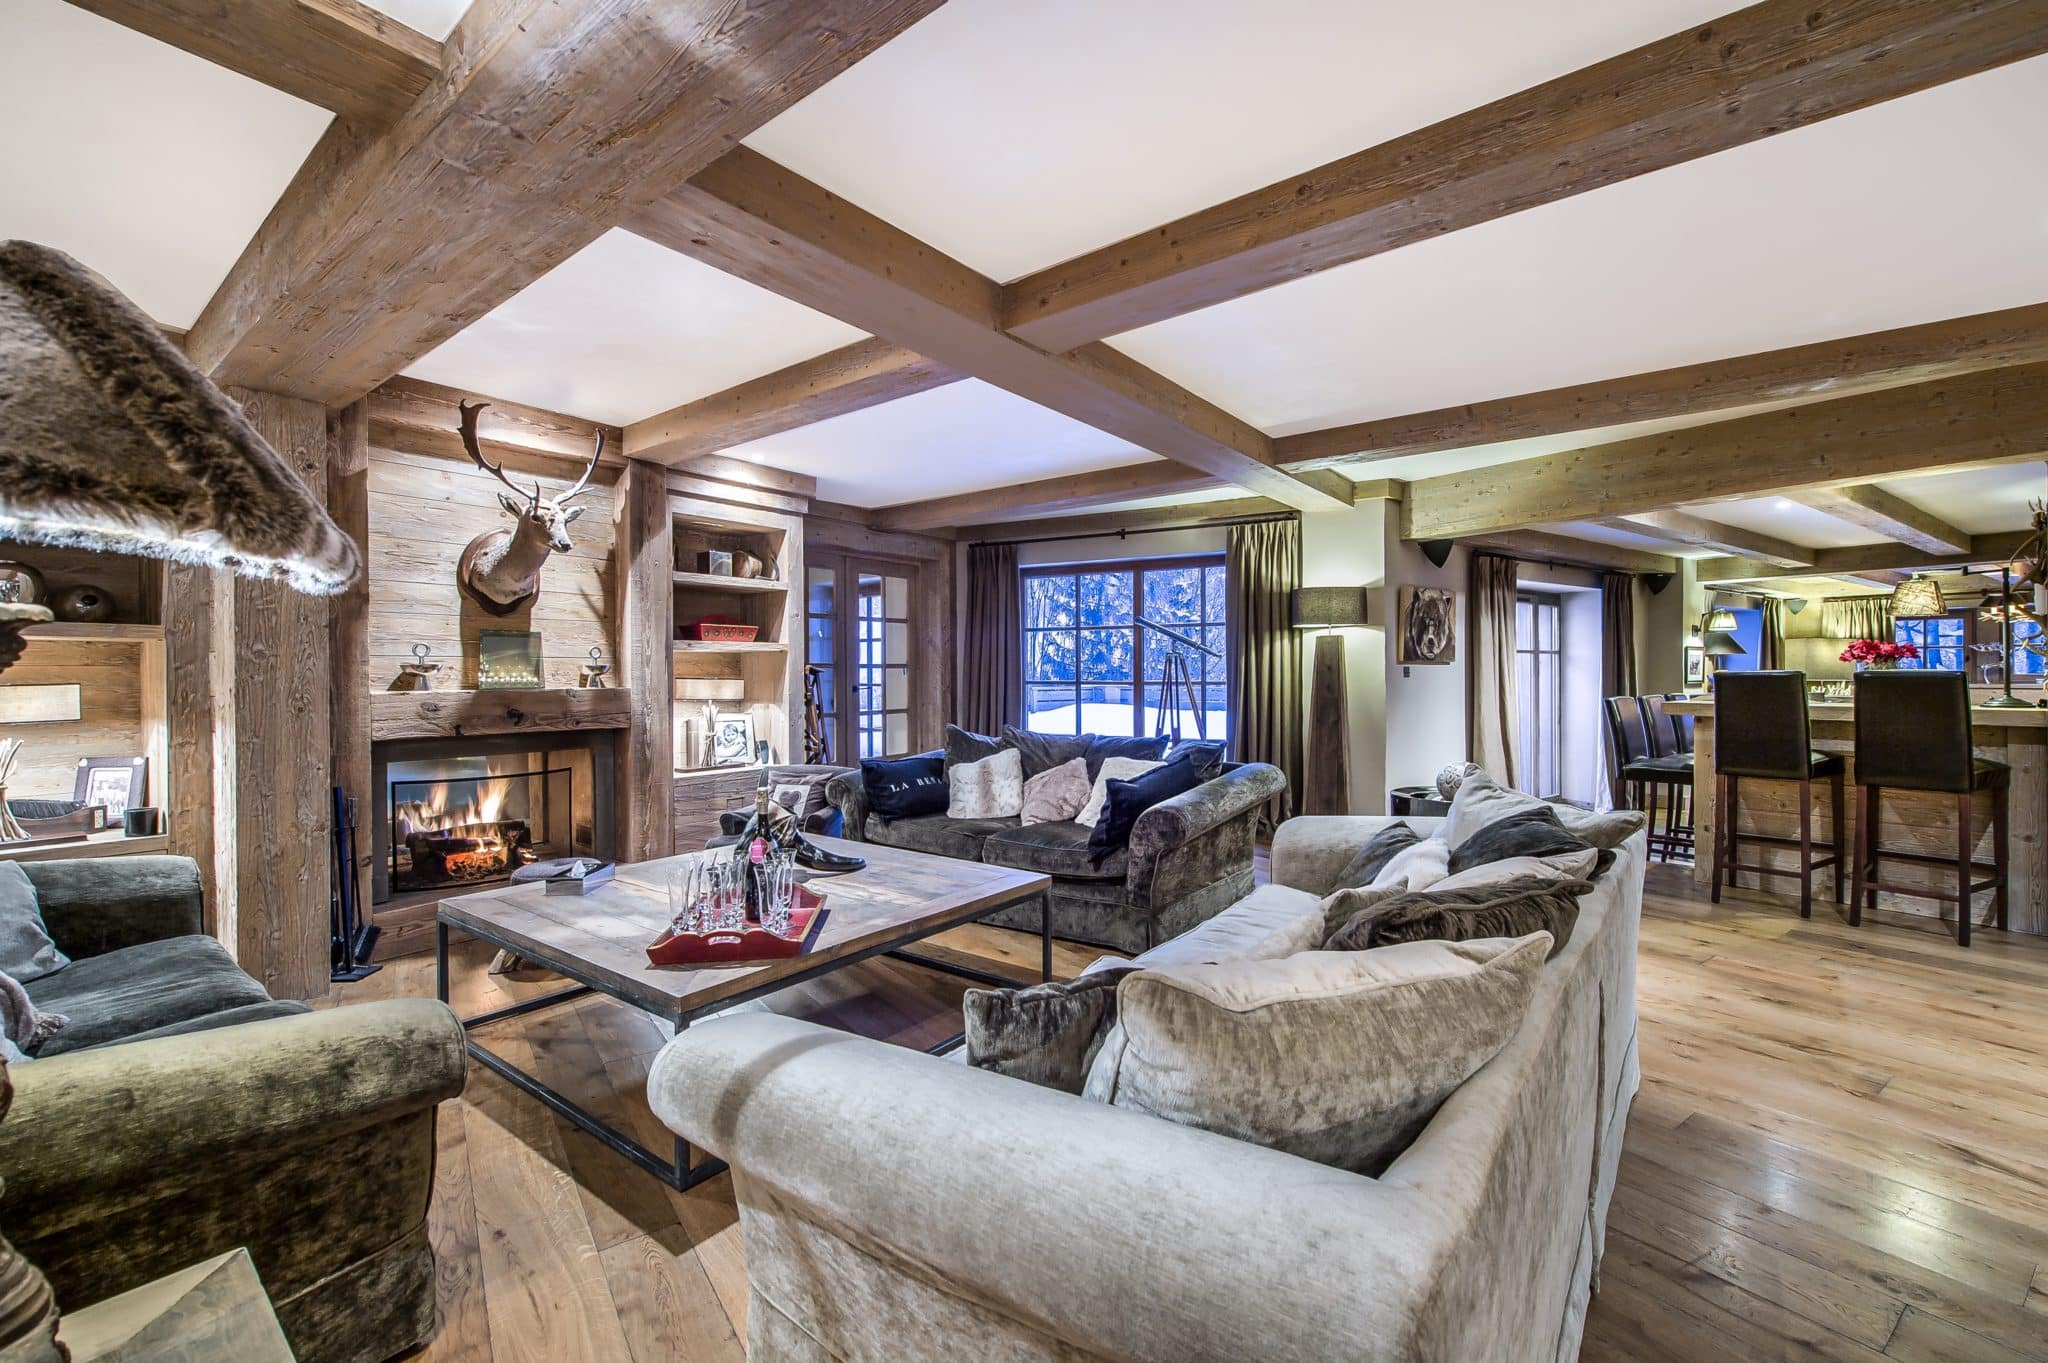 Sitting Room 4 Luxury Ski Chalet Cristal Lodge Meribel